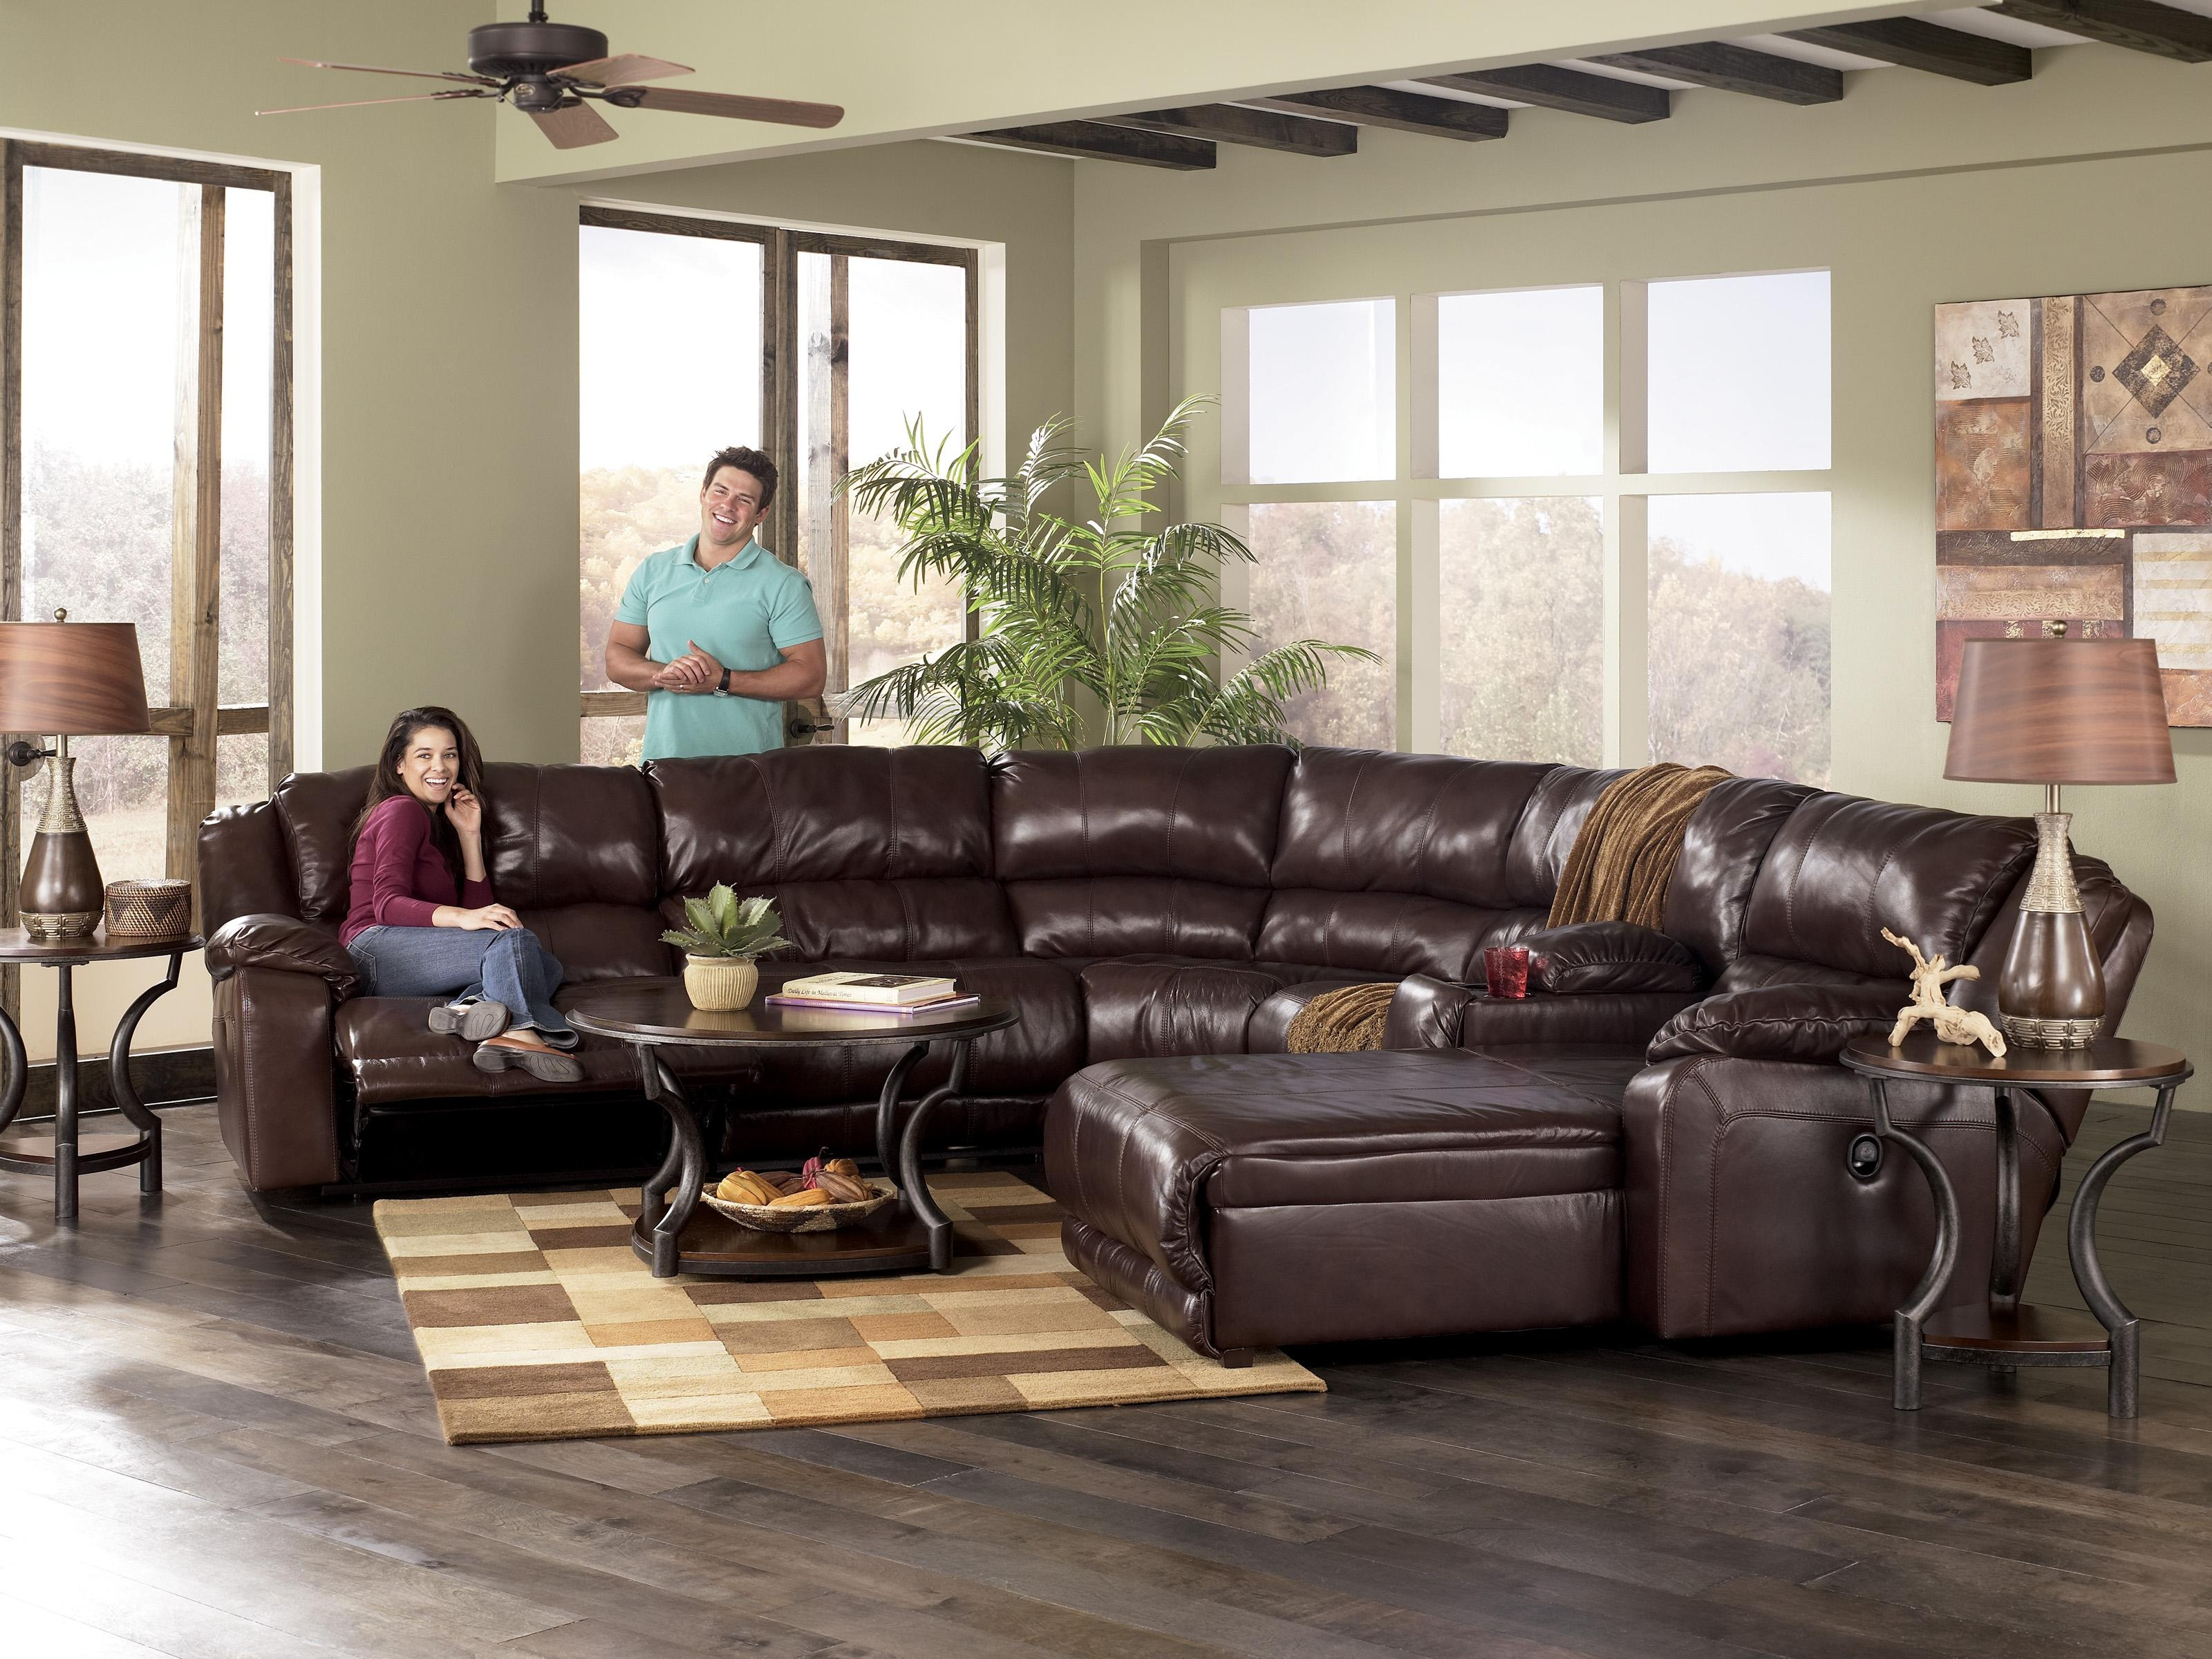 Chair & Sofa: Have An Interesting Living Room With Ashley Pertaining To Sectional Sofas Ashley Furniture (View 3 of 20)